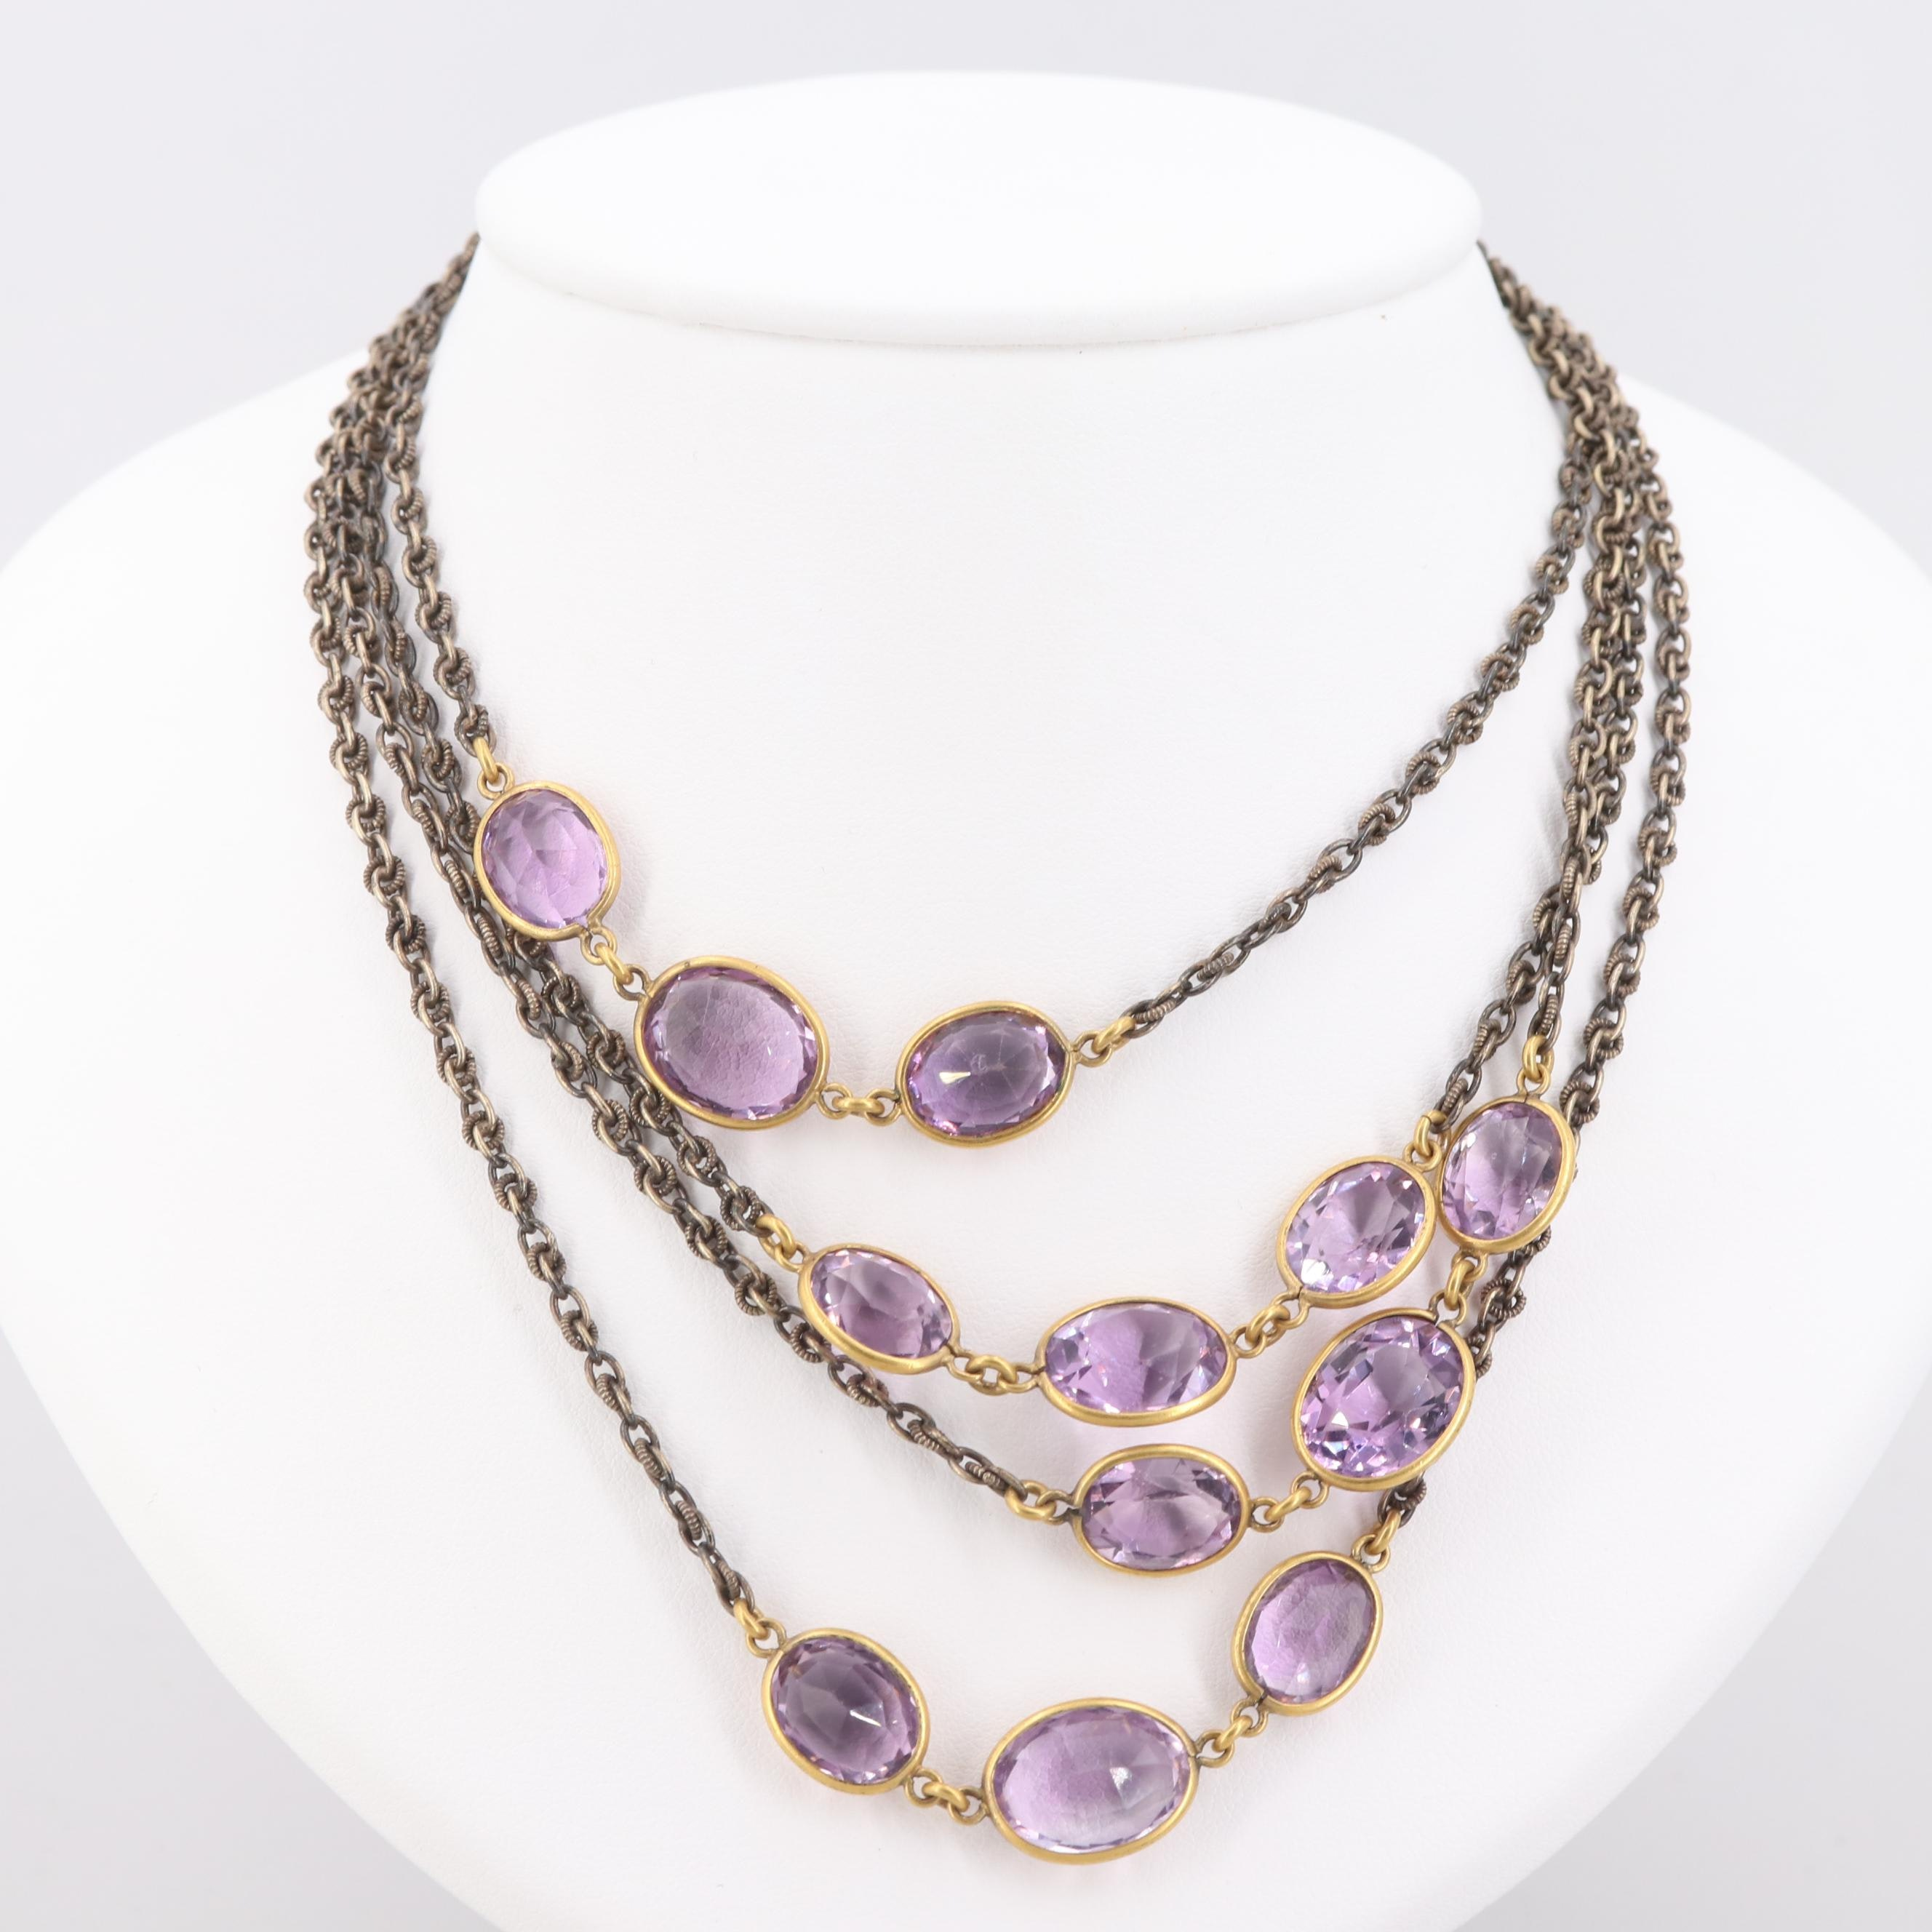 Gold Tone Amethyst Station Necklace